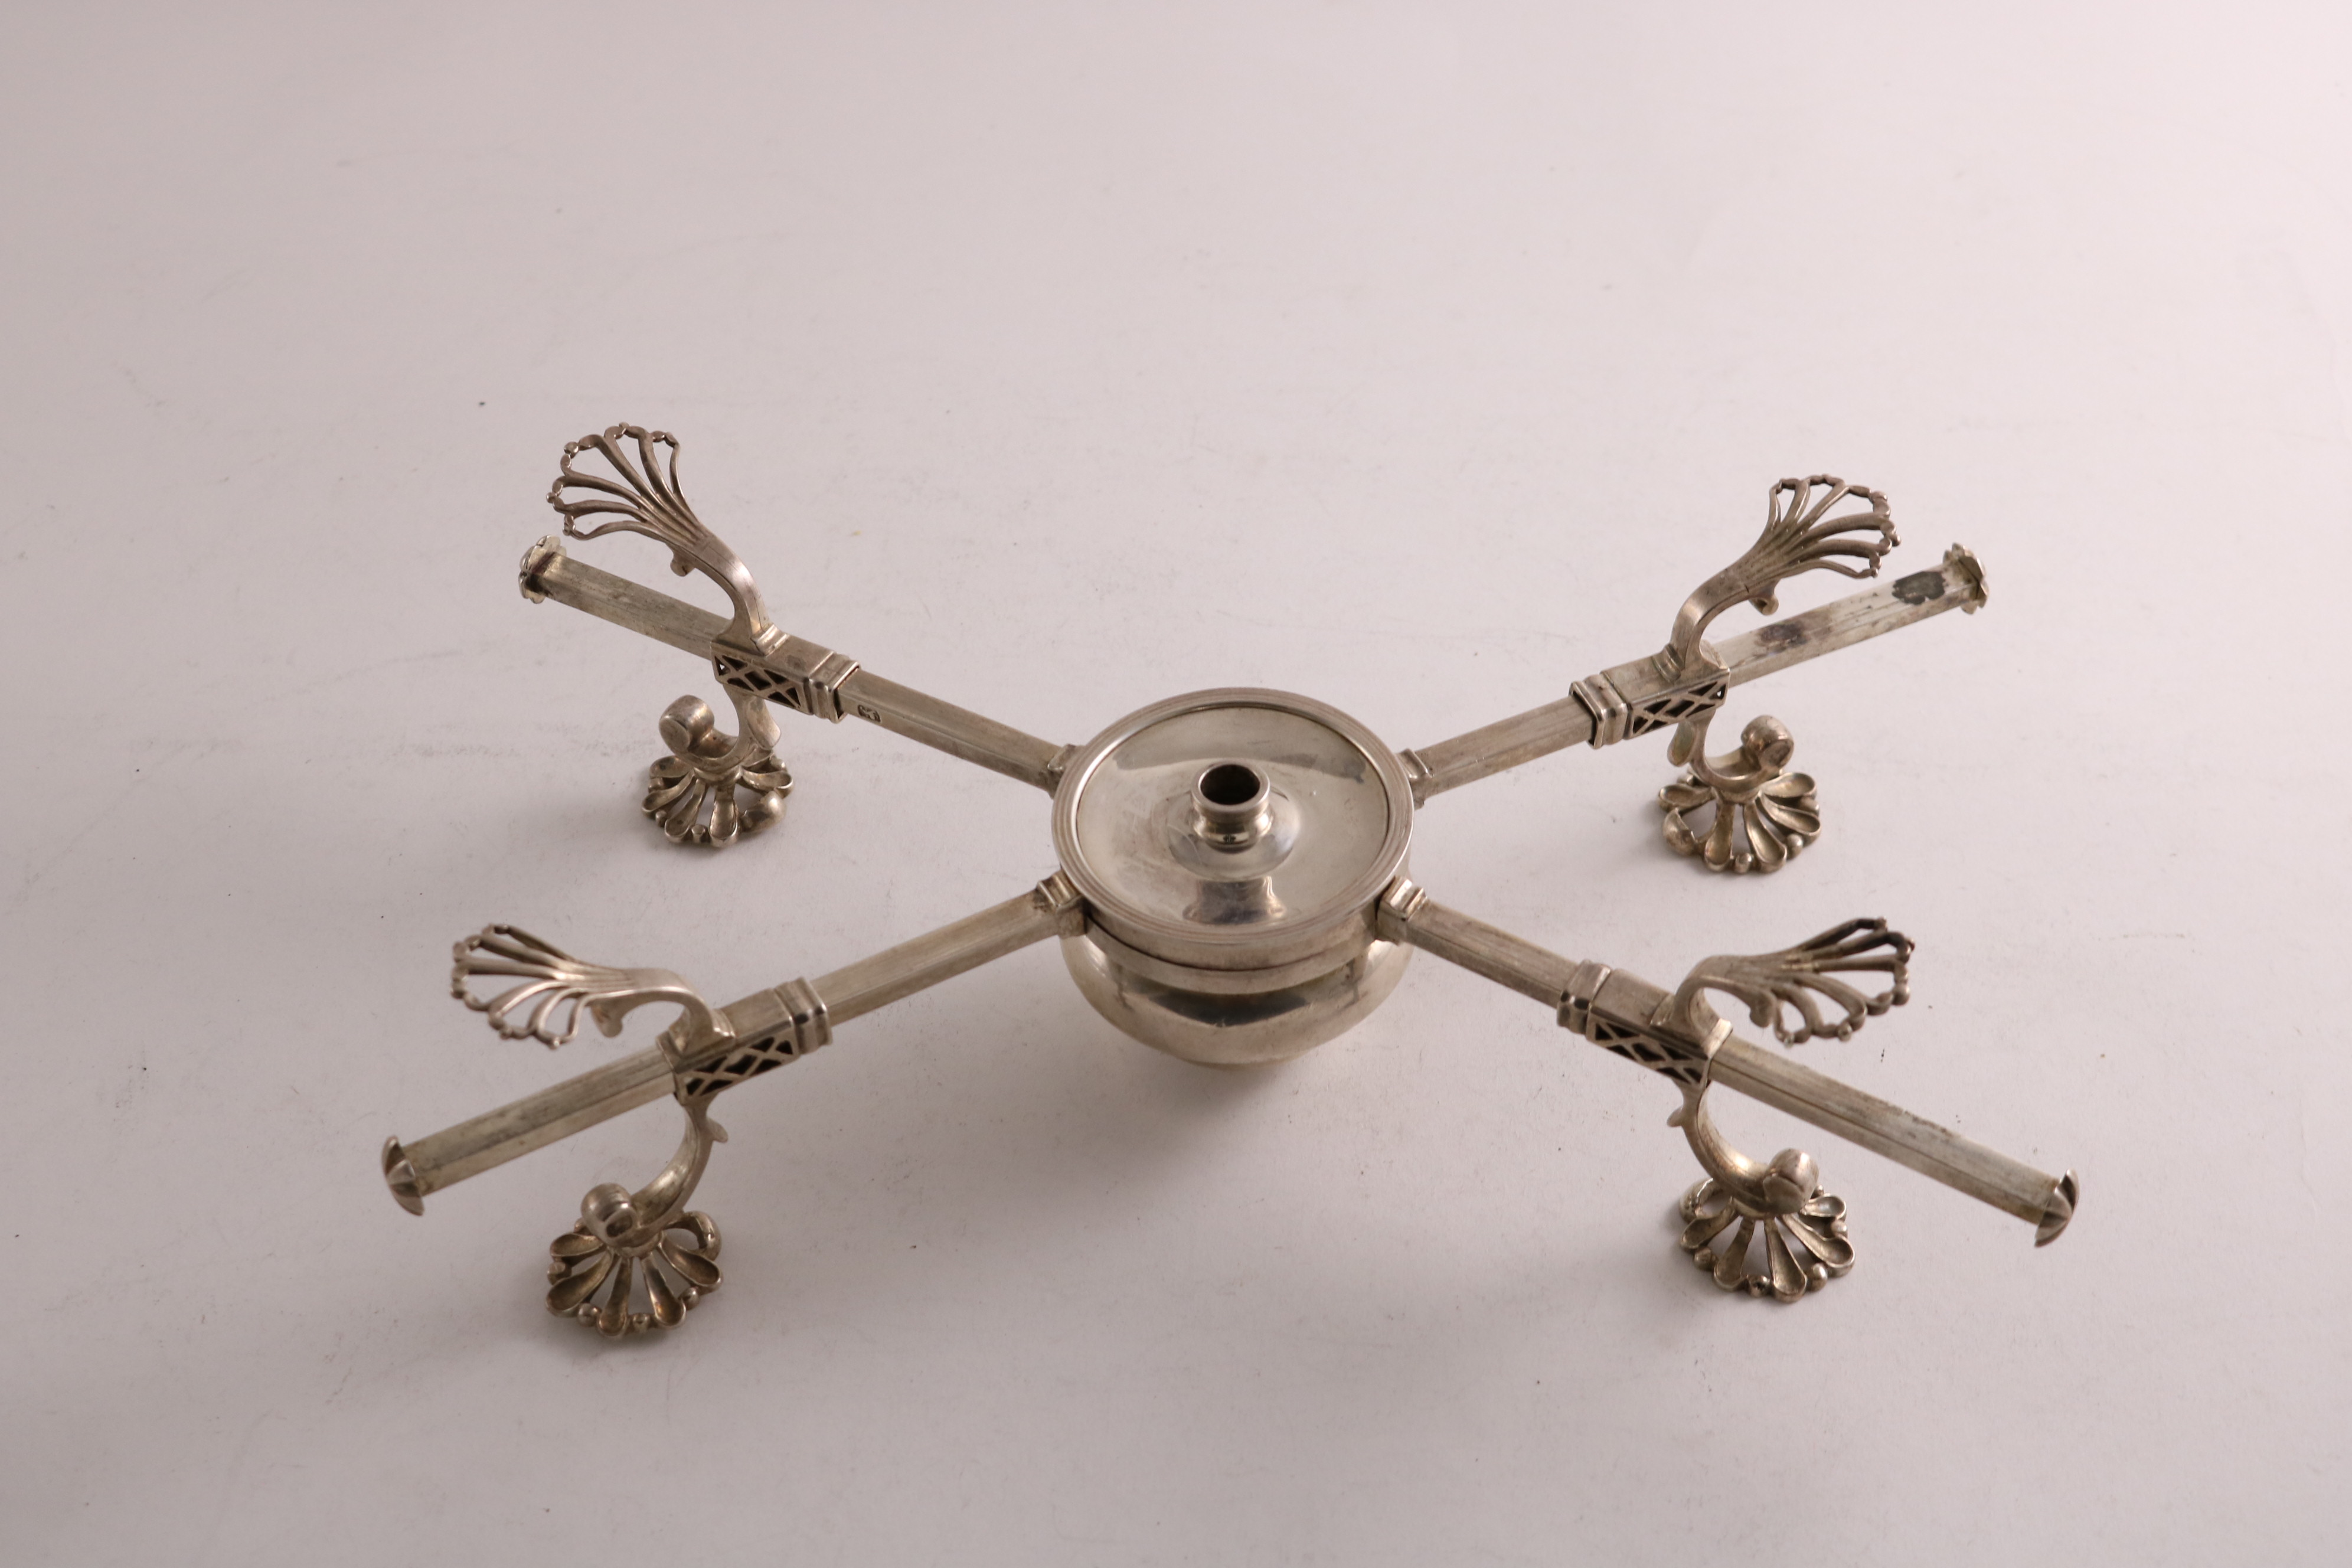 Lot 2 - A GEORGE III ADJUSTABLE DISH CROSS with pierced feet and supports and a central burner, probably